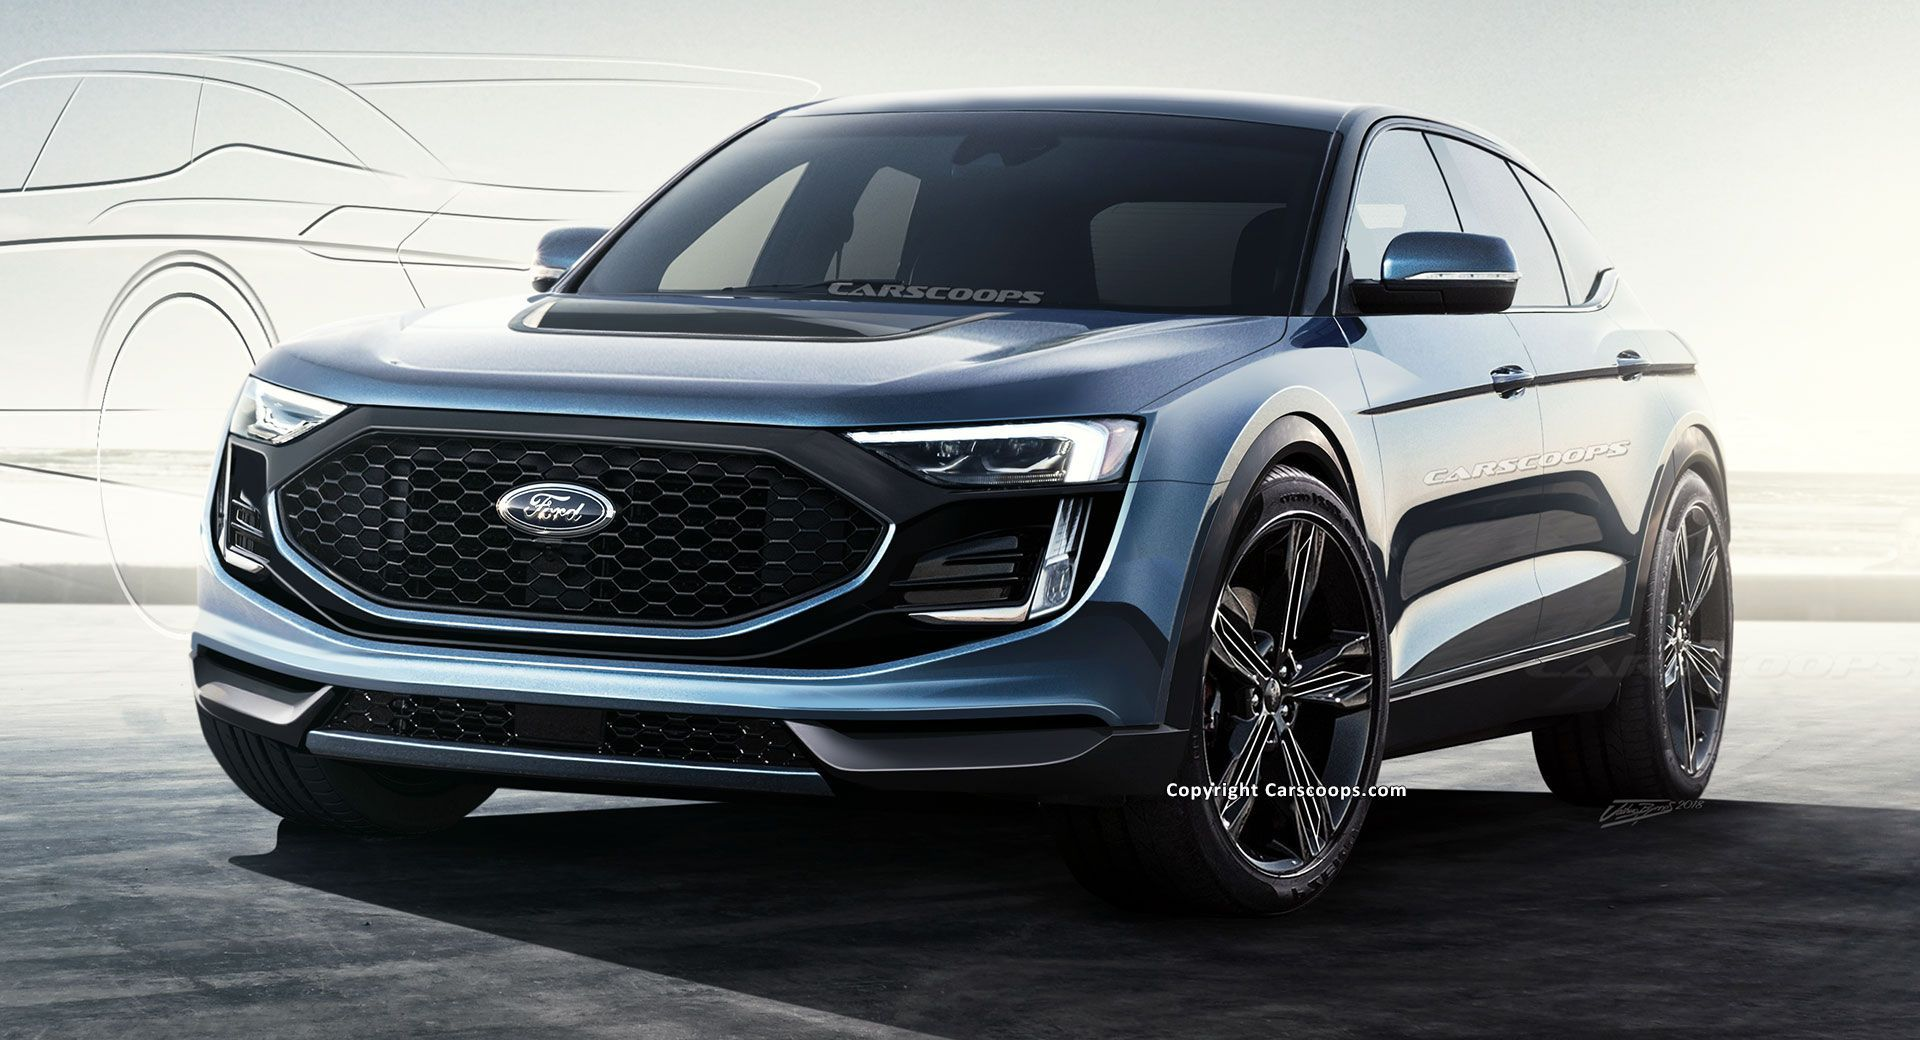 2020 Ford Mach 1 Electric Suv News Rumors And What It Could Look